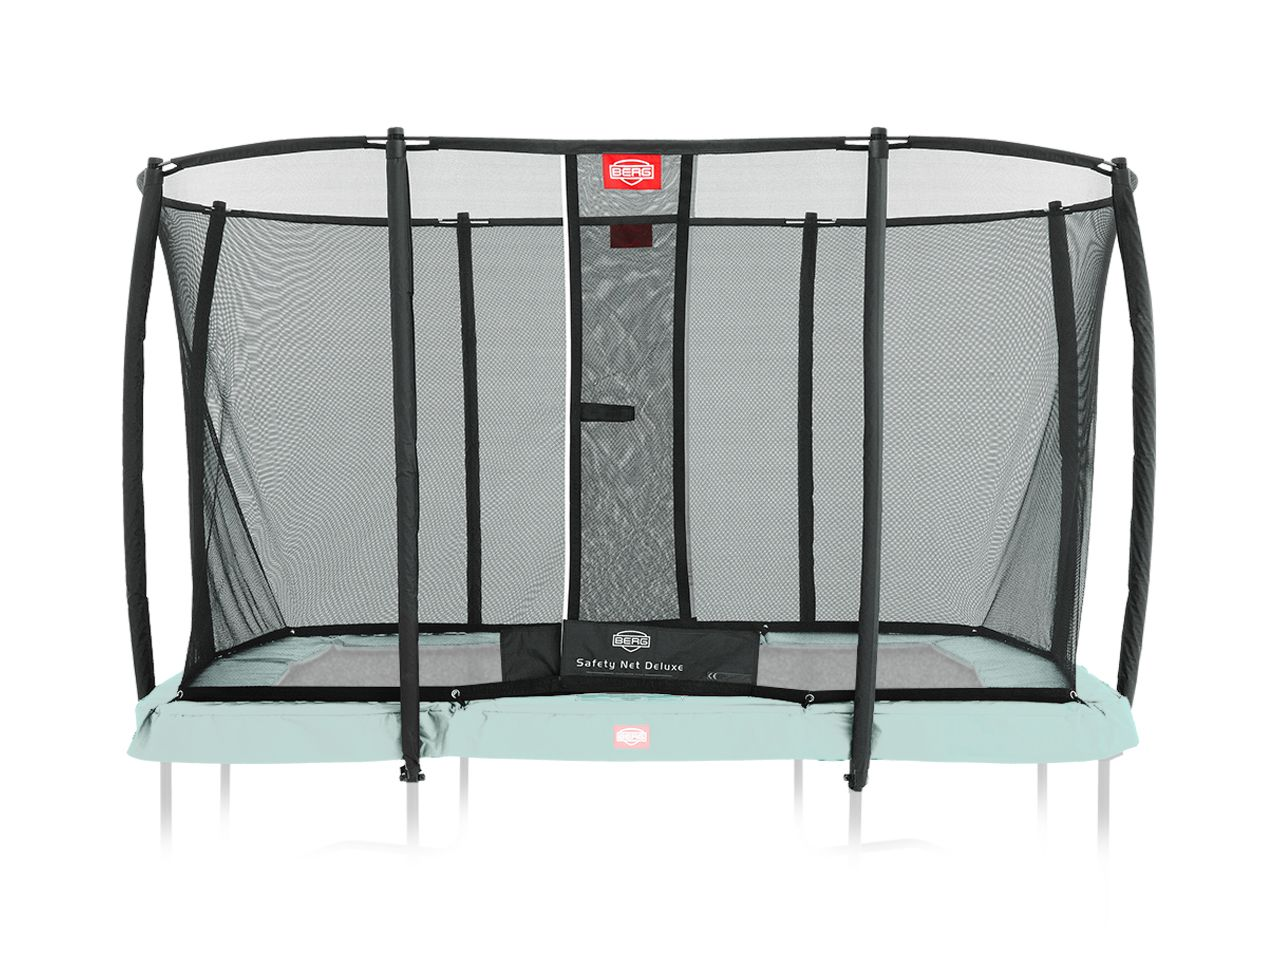 BERG Safety Net Deluxe EazyFit